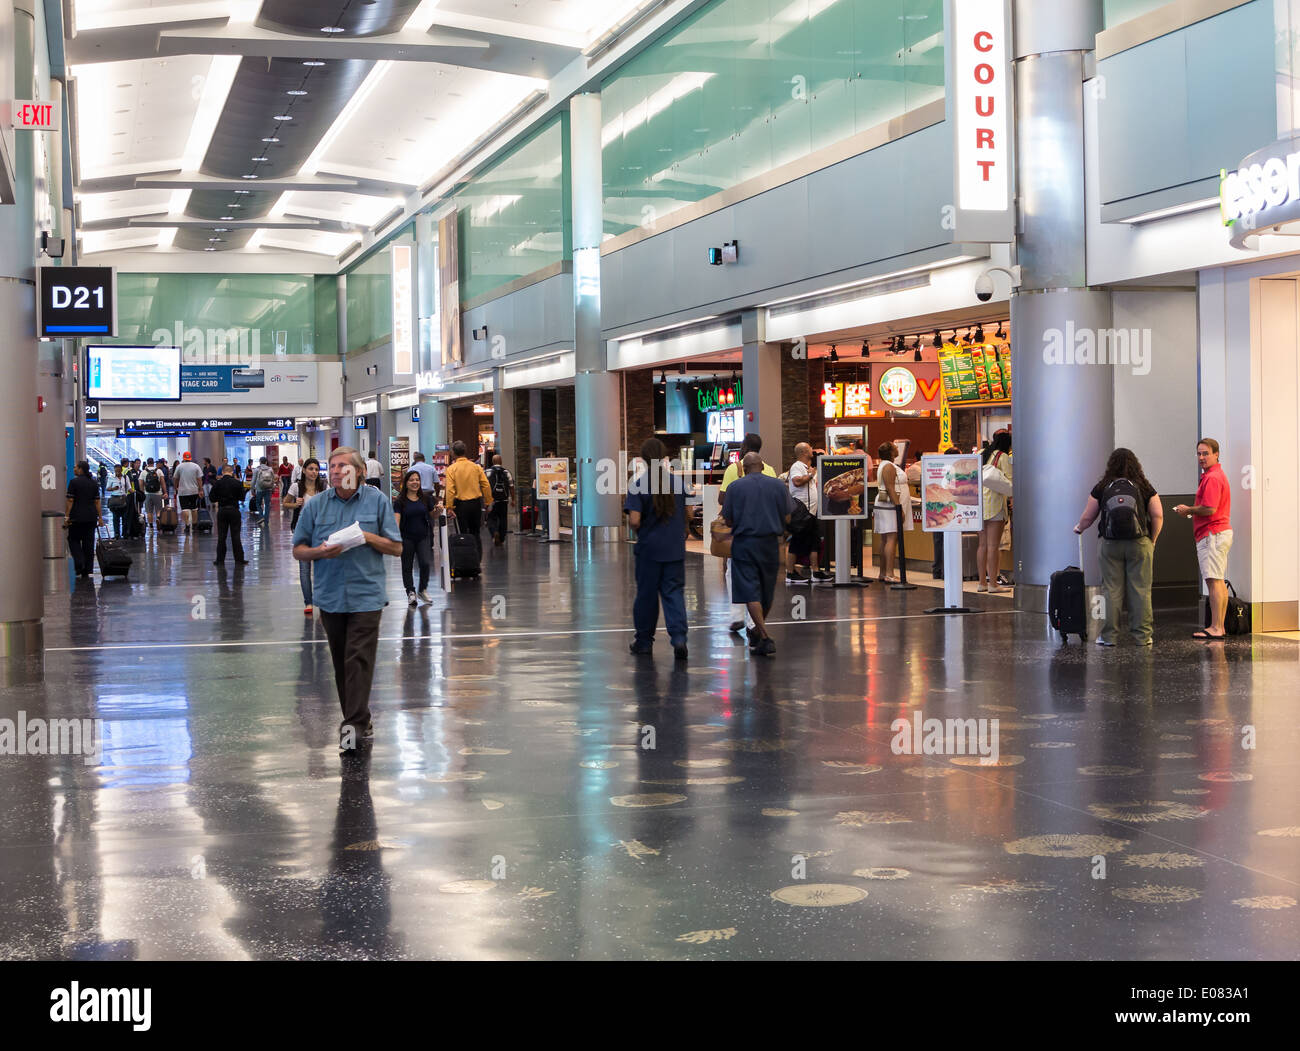 american airlines terminal am miami international airport